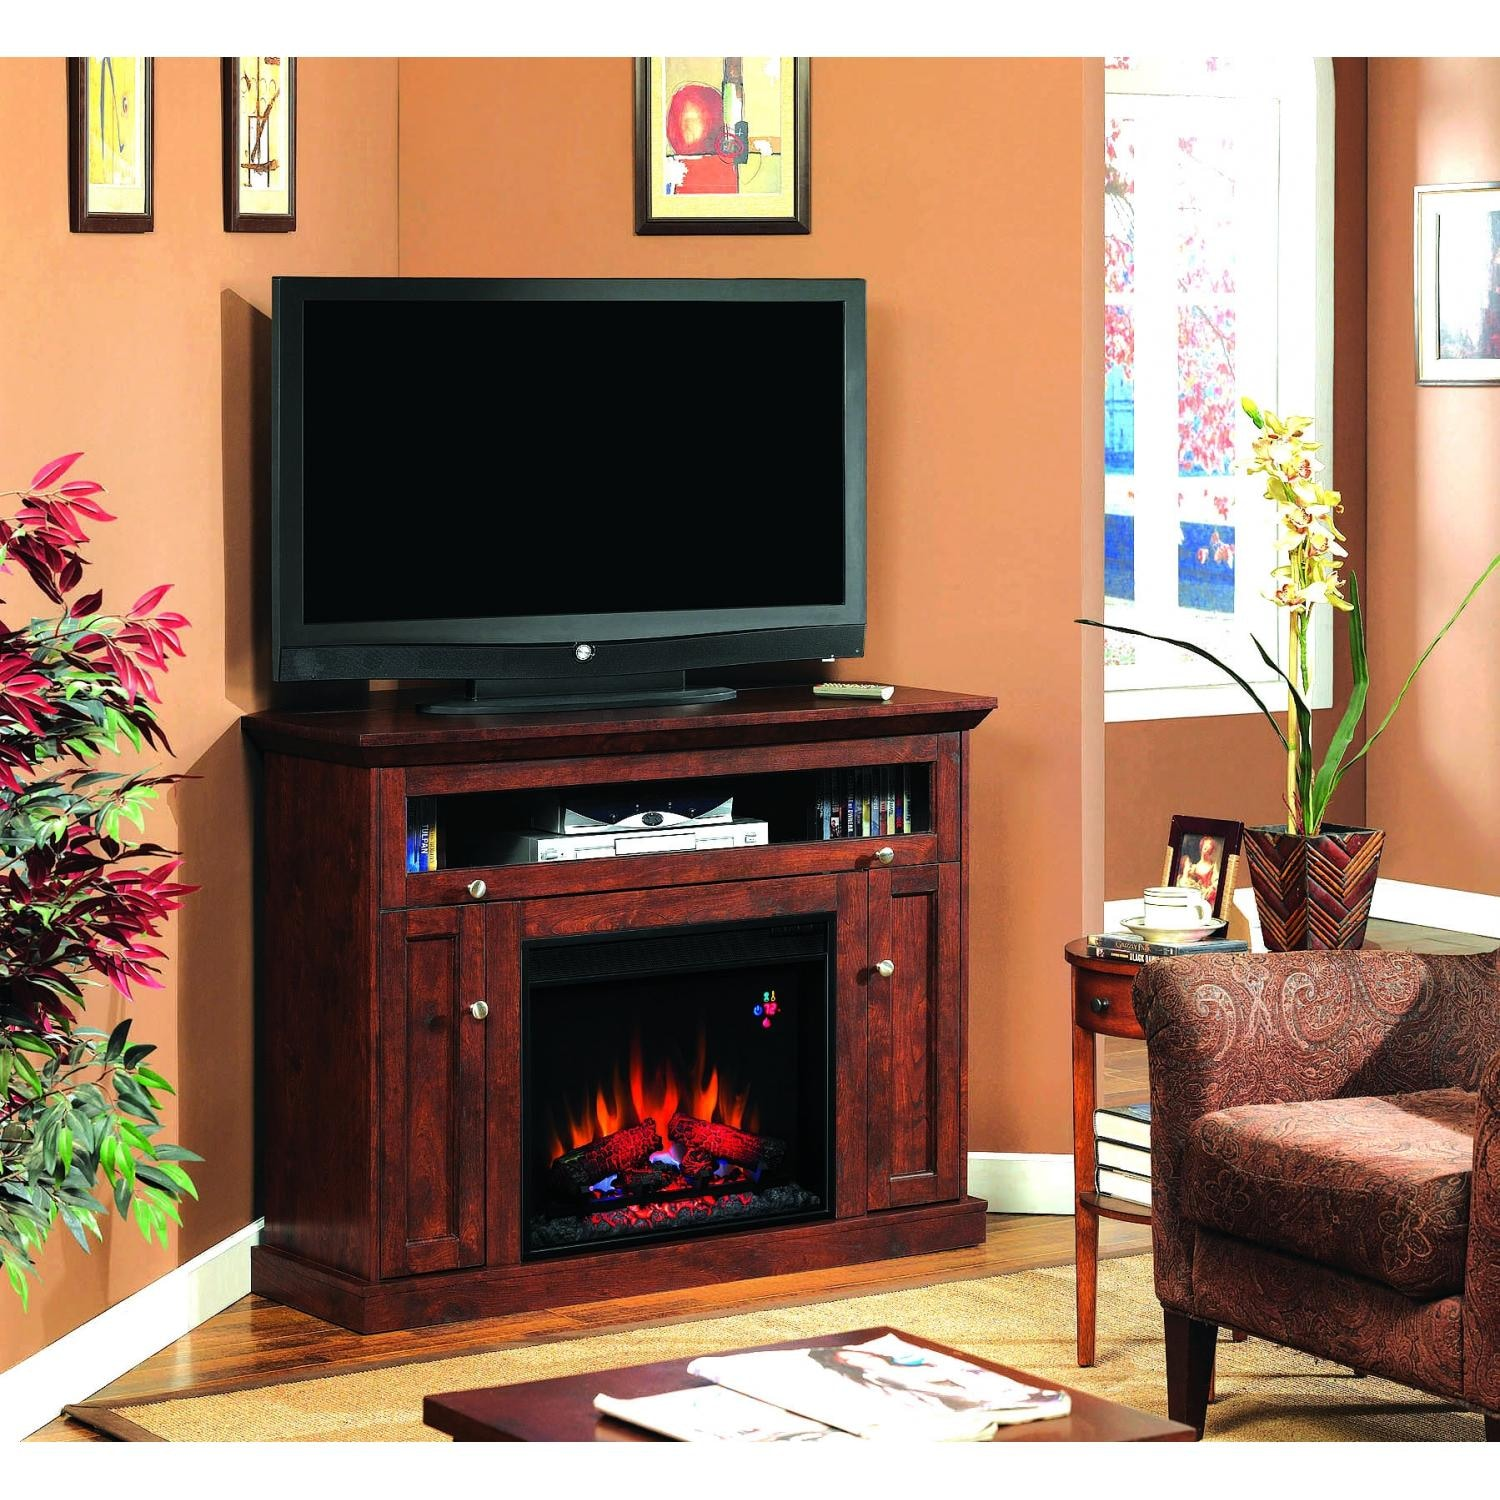 Corner tv stand with electric fireplace ideas corner tv stand with fireplace beautiful corner - Beautiful corner fireplace design ideas for your family time ...